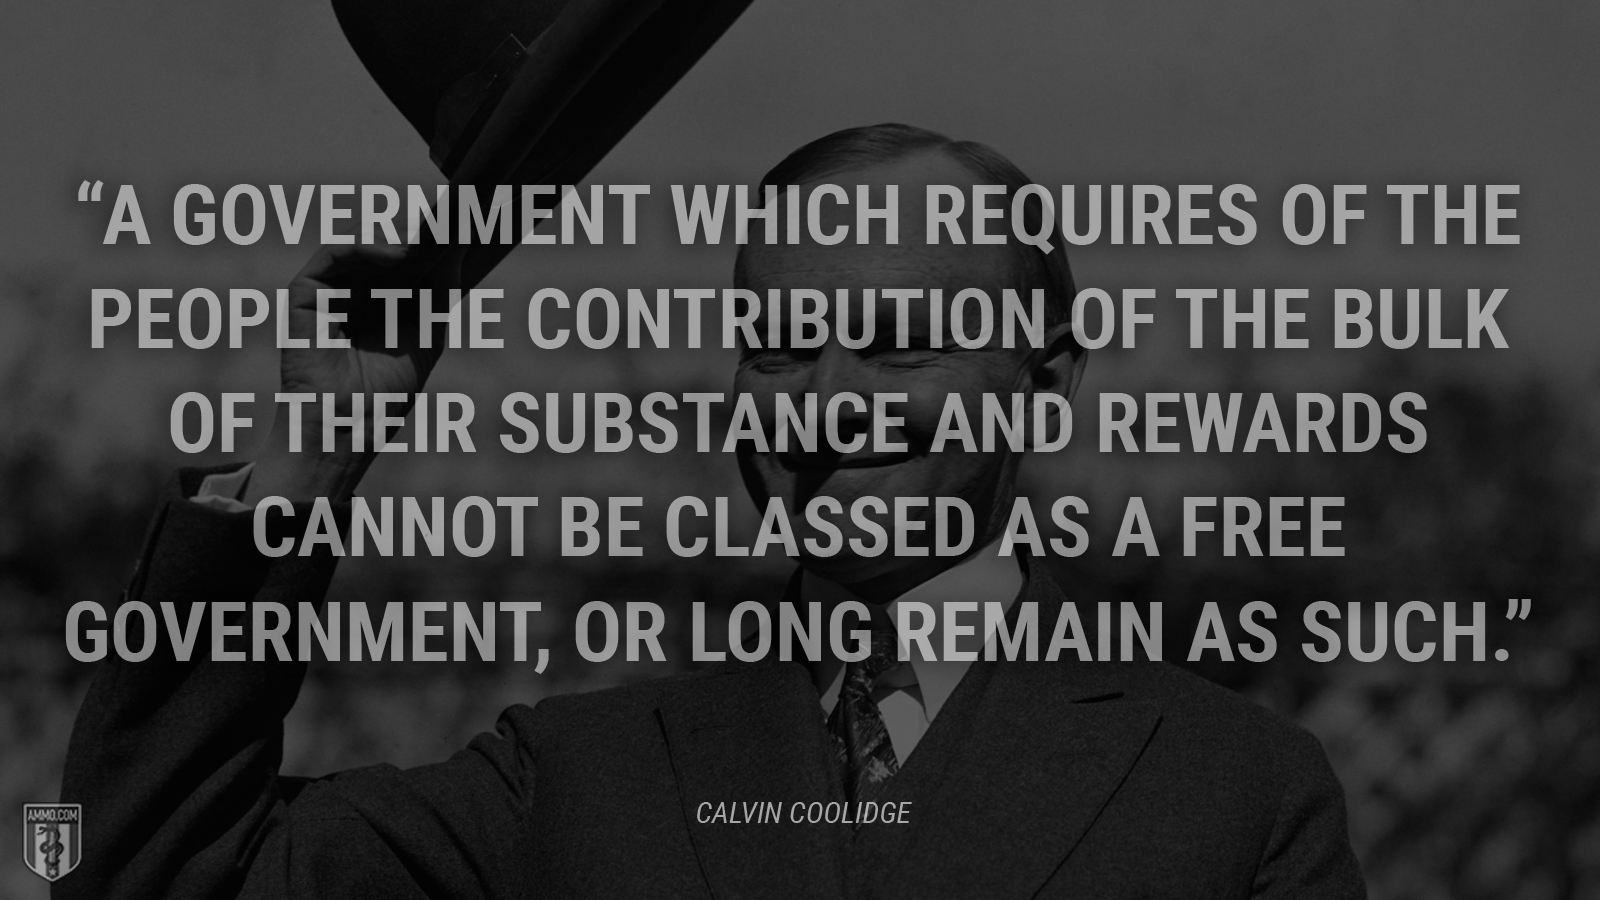 """A government which requires of the people the contribution of the bulk of their substance and rewards cannot be classed as a free government, or long remain as such."" - Calvin Coolidge"